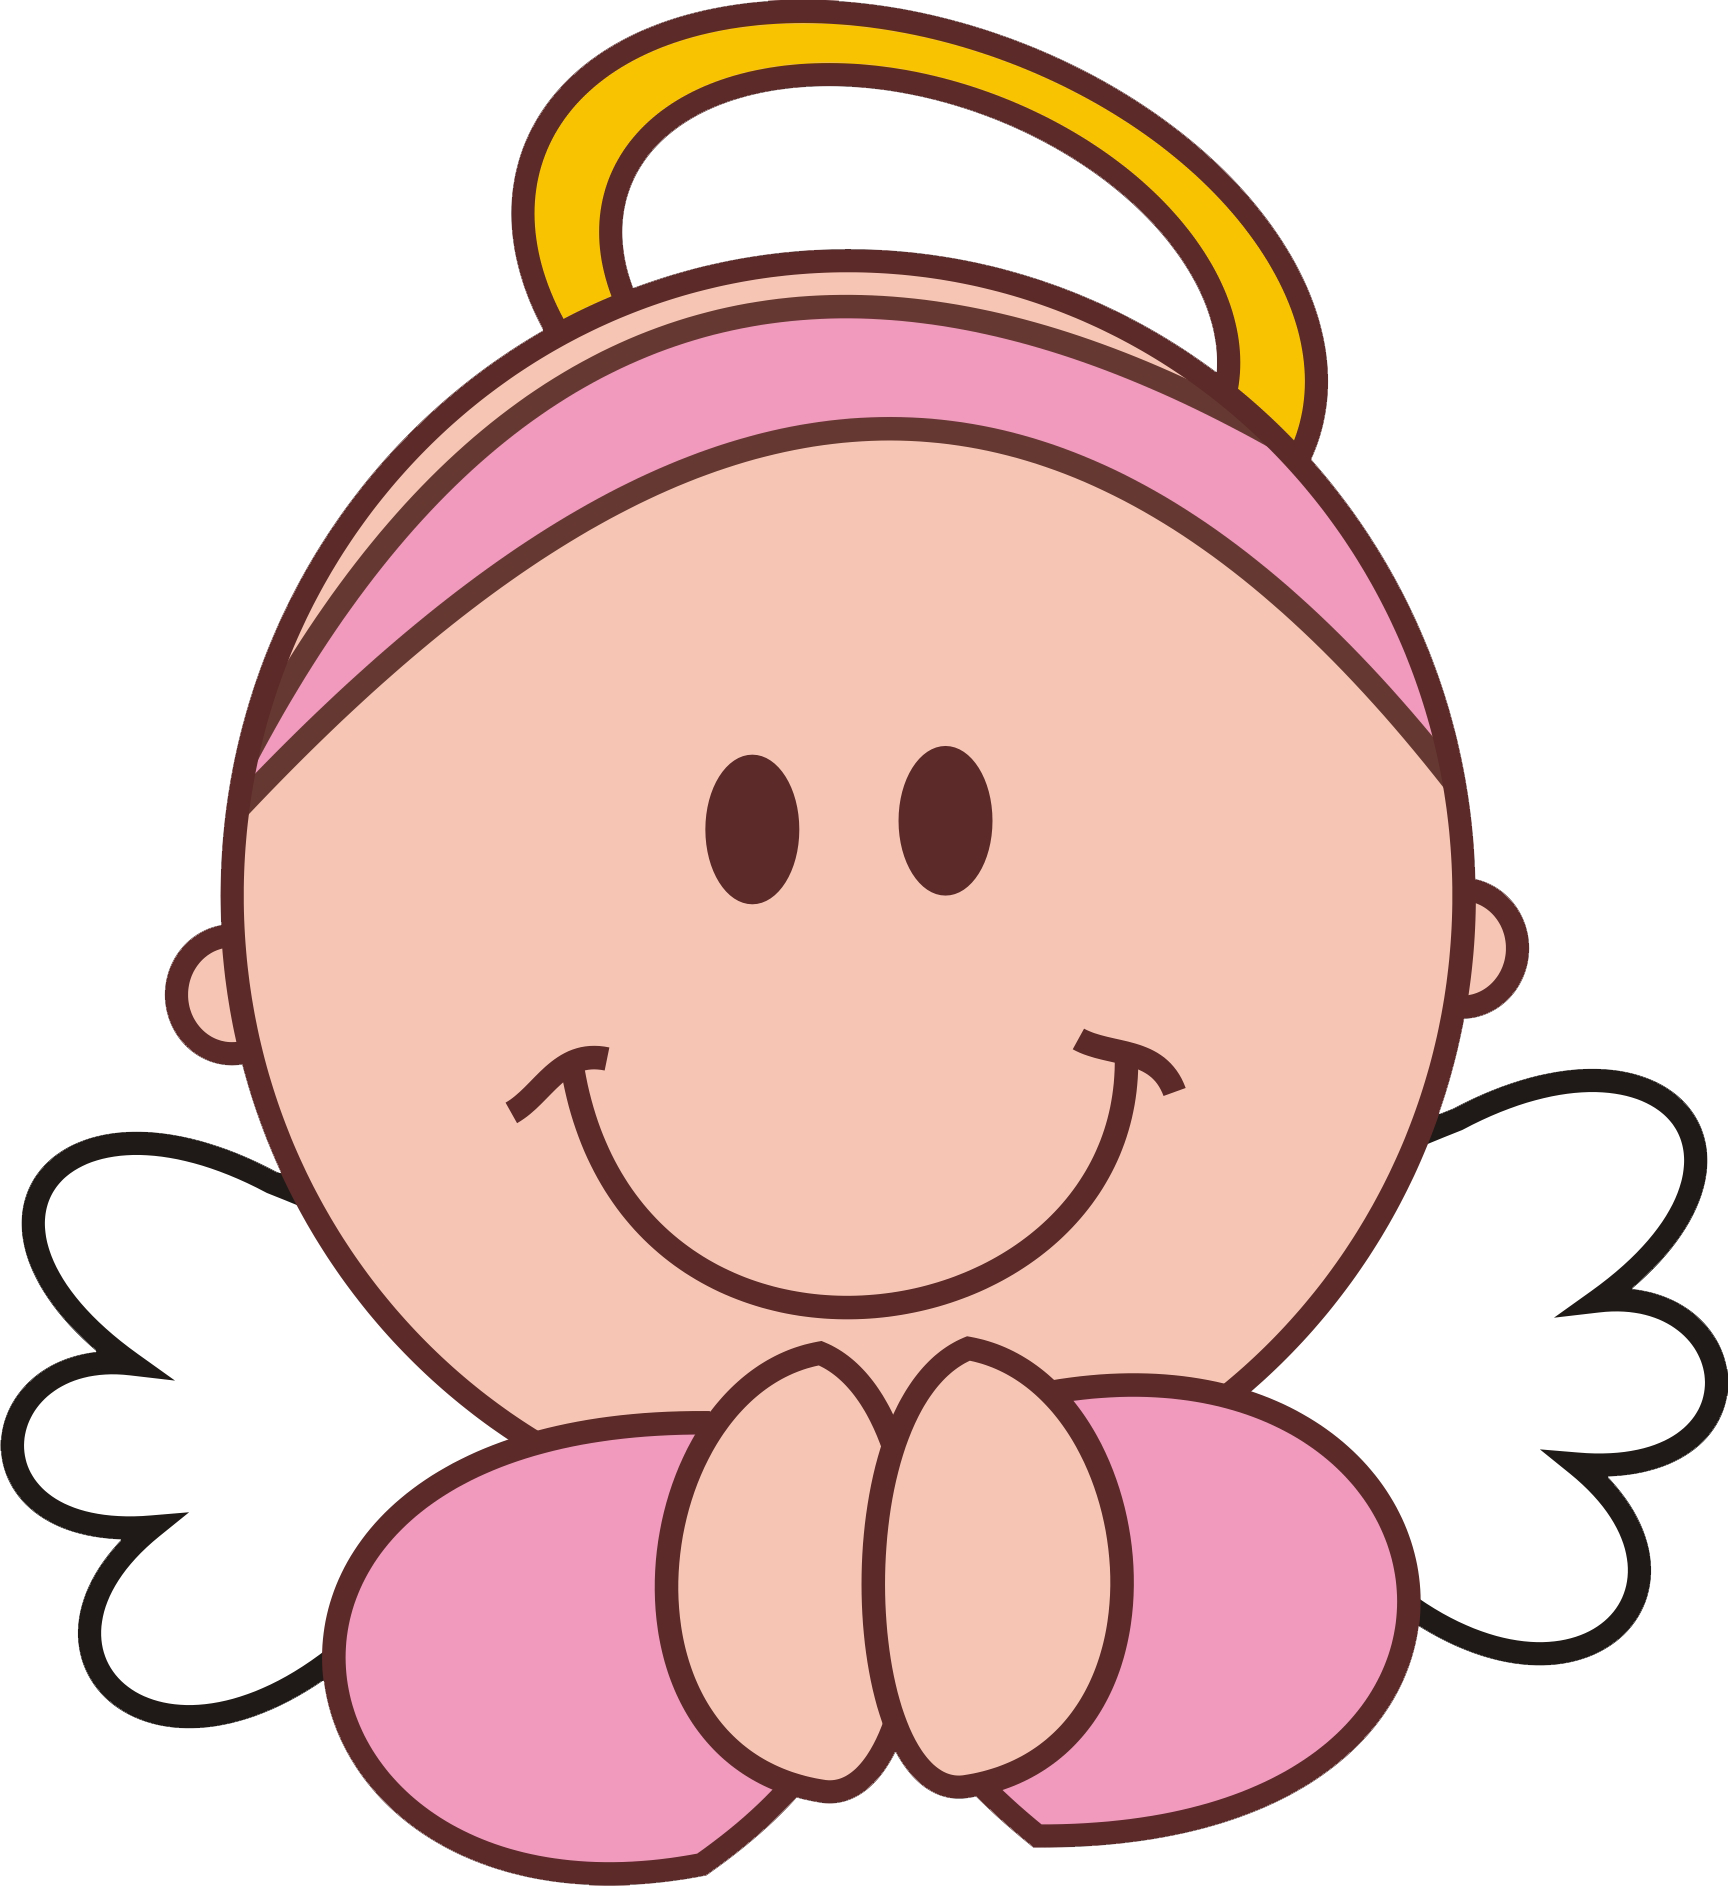 angelitos png - photo #18